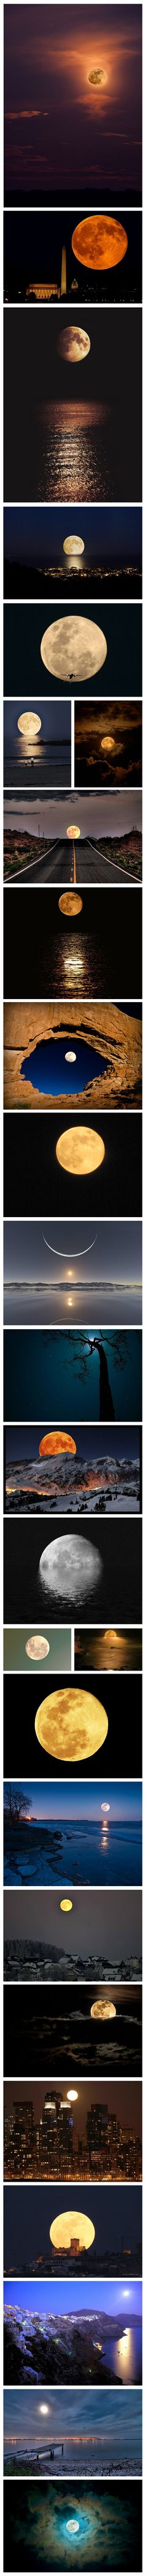 "A collection of the best Lunar images, inspired by the ""Supermoon"" of May 5, 2012. moon, sky, amaz, star, natur, beauti, sun, thing, photographi"